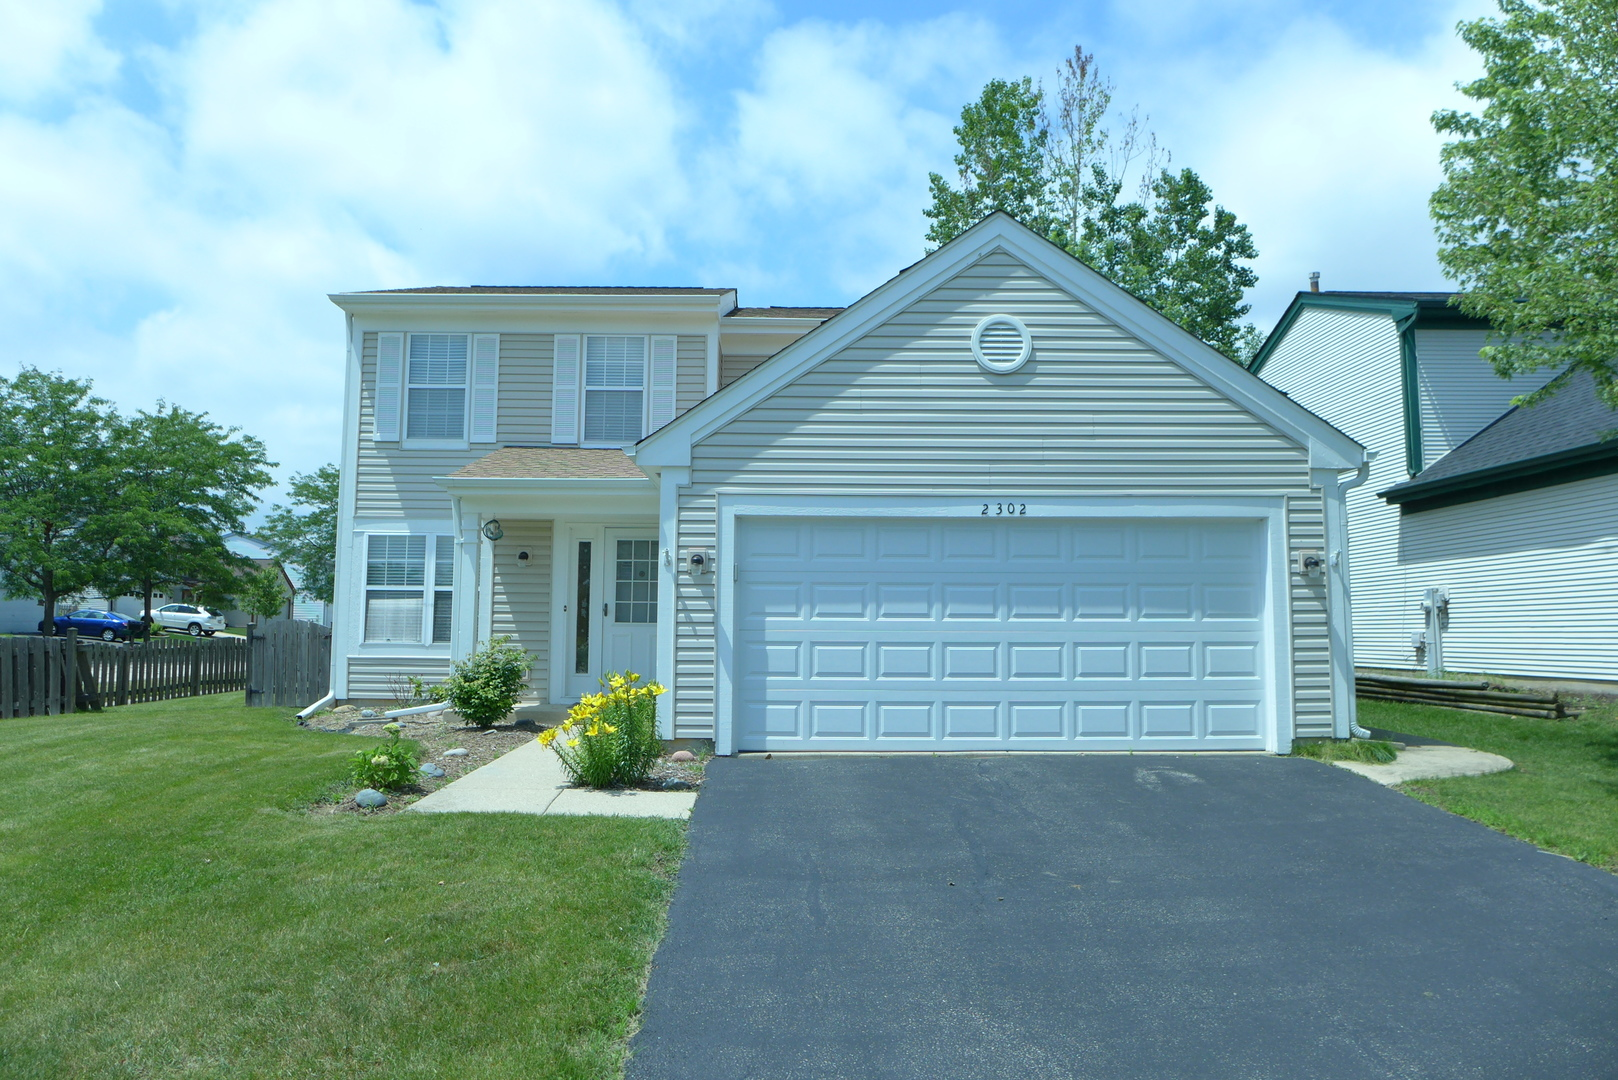 homes for sale in round lake beach